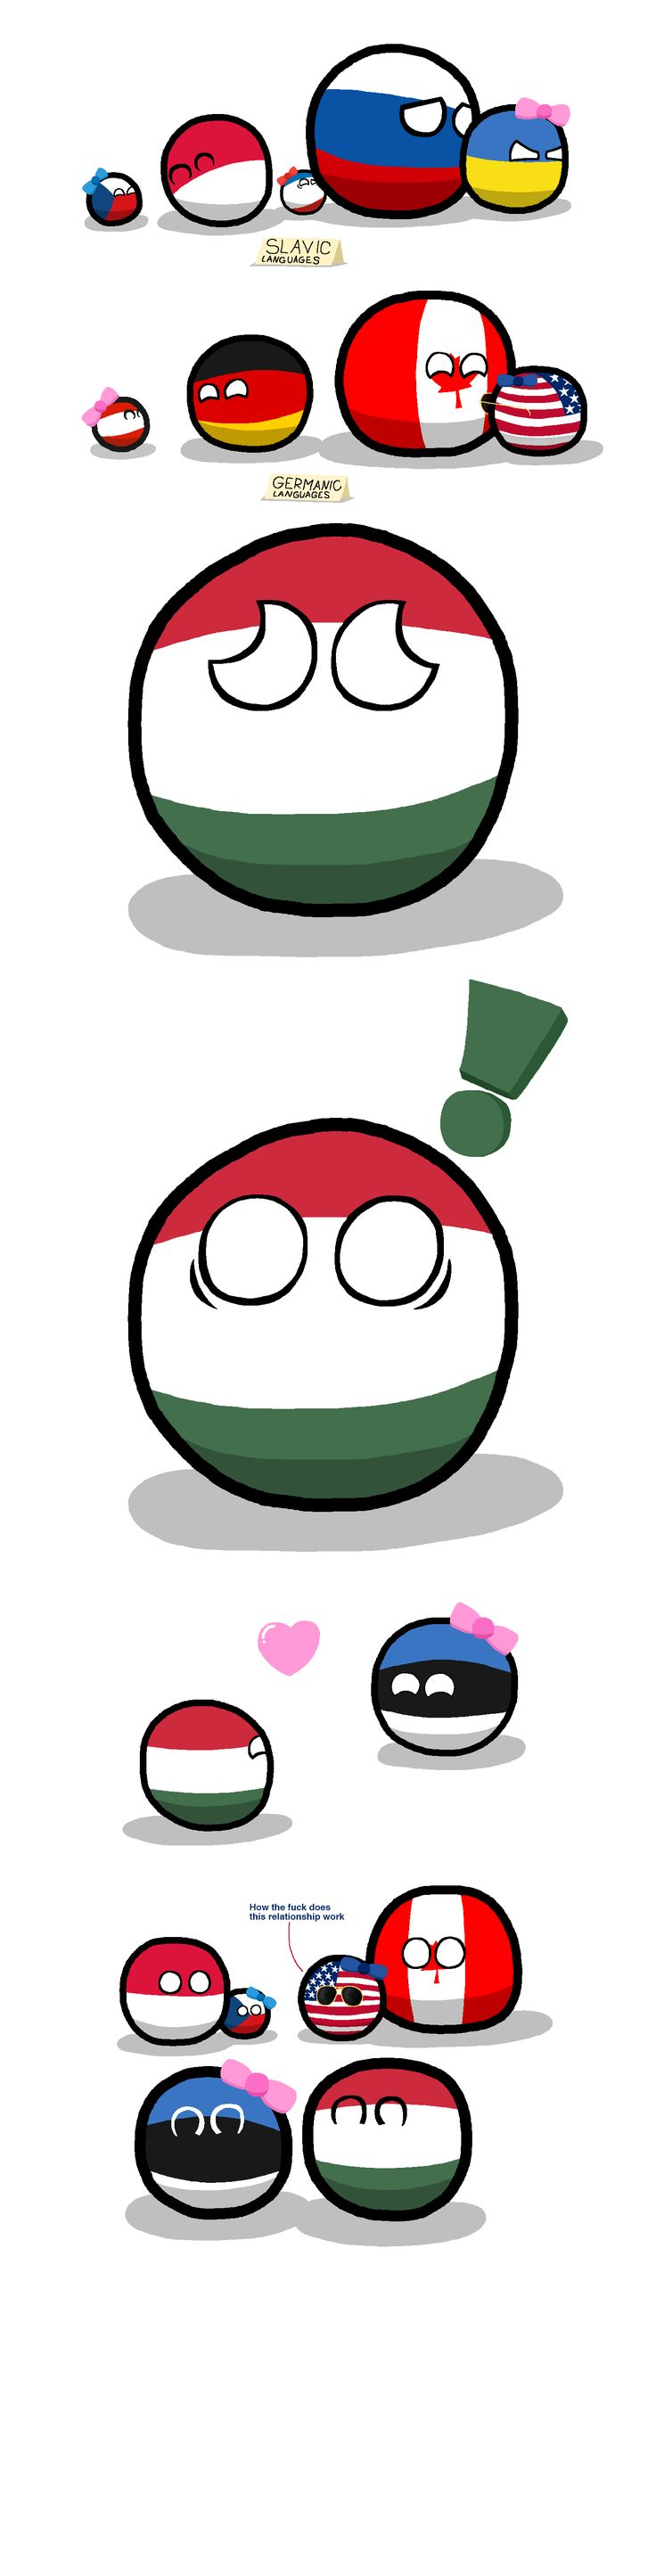 http://countryballs.net/_nw/40/38256263.png